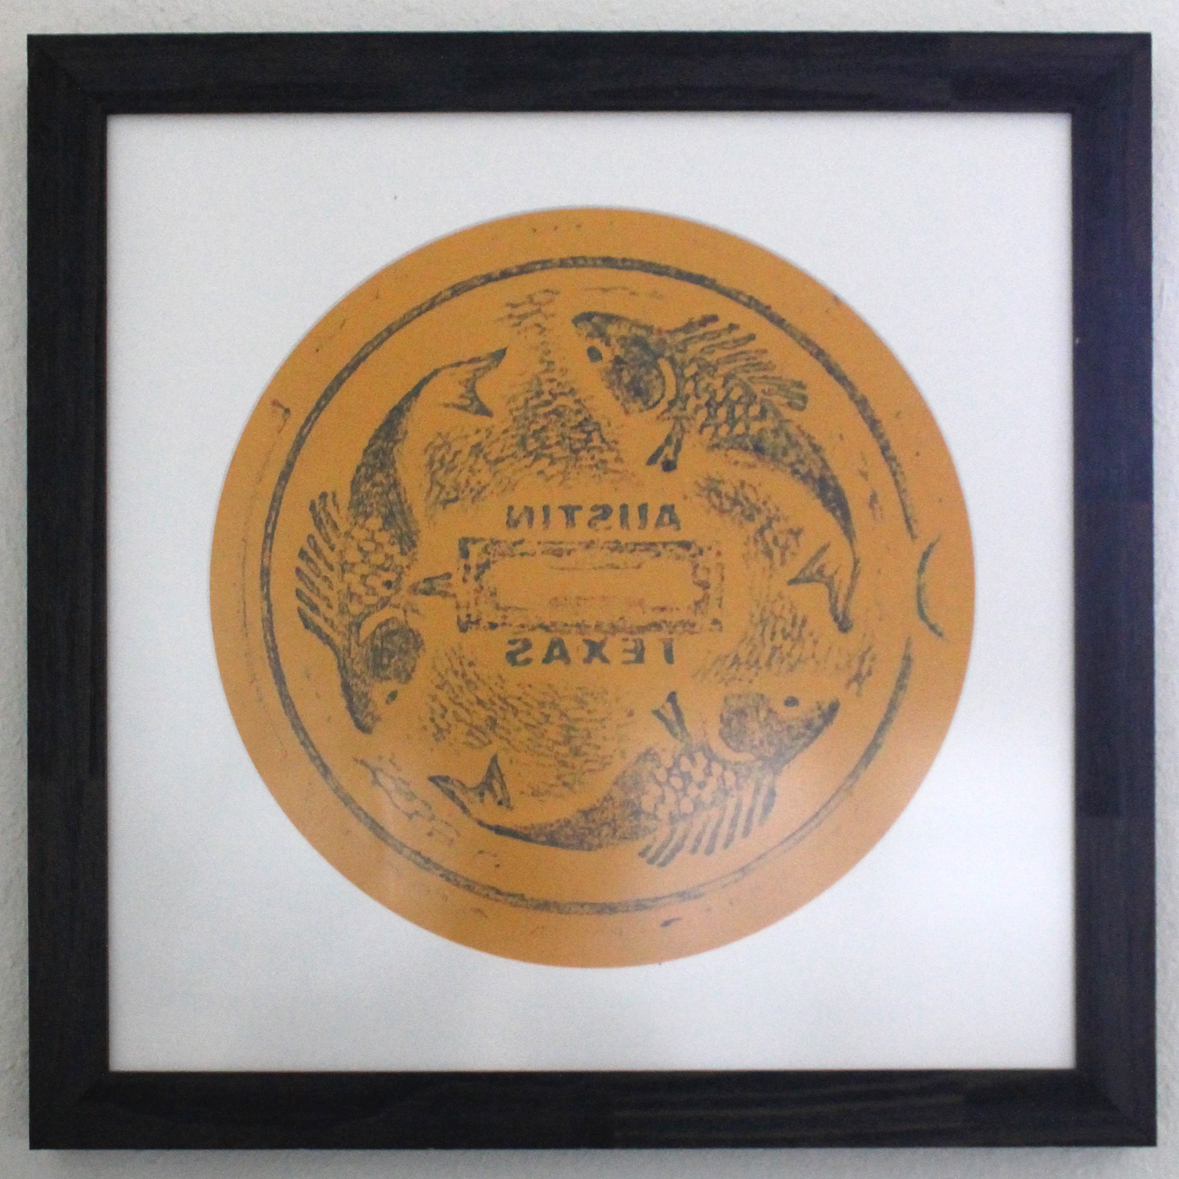 A blue and green rubbing on orange paper, in a circular mat, in a square dark purple frame. The rubbing design features three stylized fish chasing each other around a circle, with the words AUSTIN TEXAS mirror-reversed at the center.